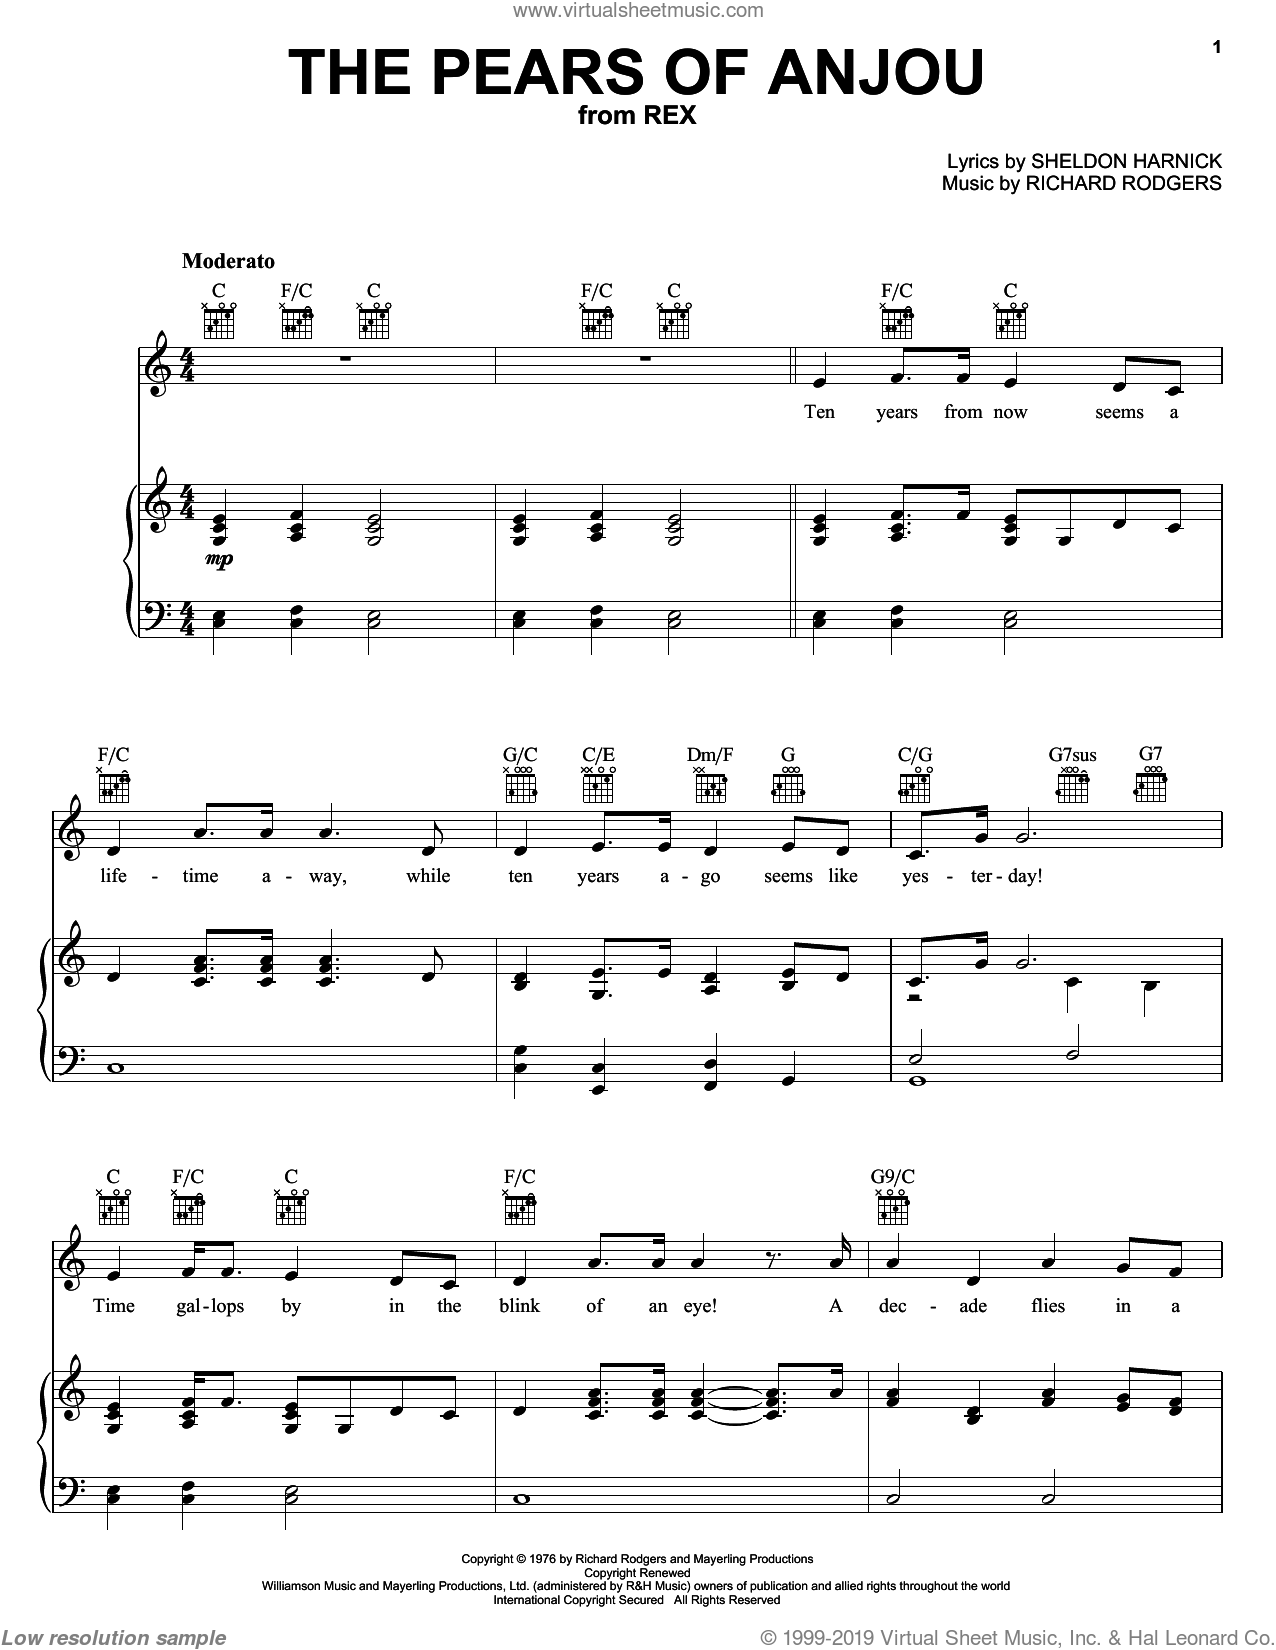 The Pears Of Anjou sheet music for voice, piano or guitar by Richard Rodgers and Sheldon Harnick, intermediate. Score Image Preview.